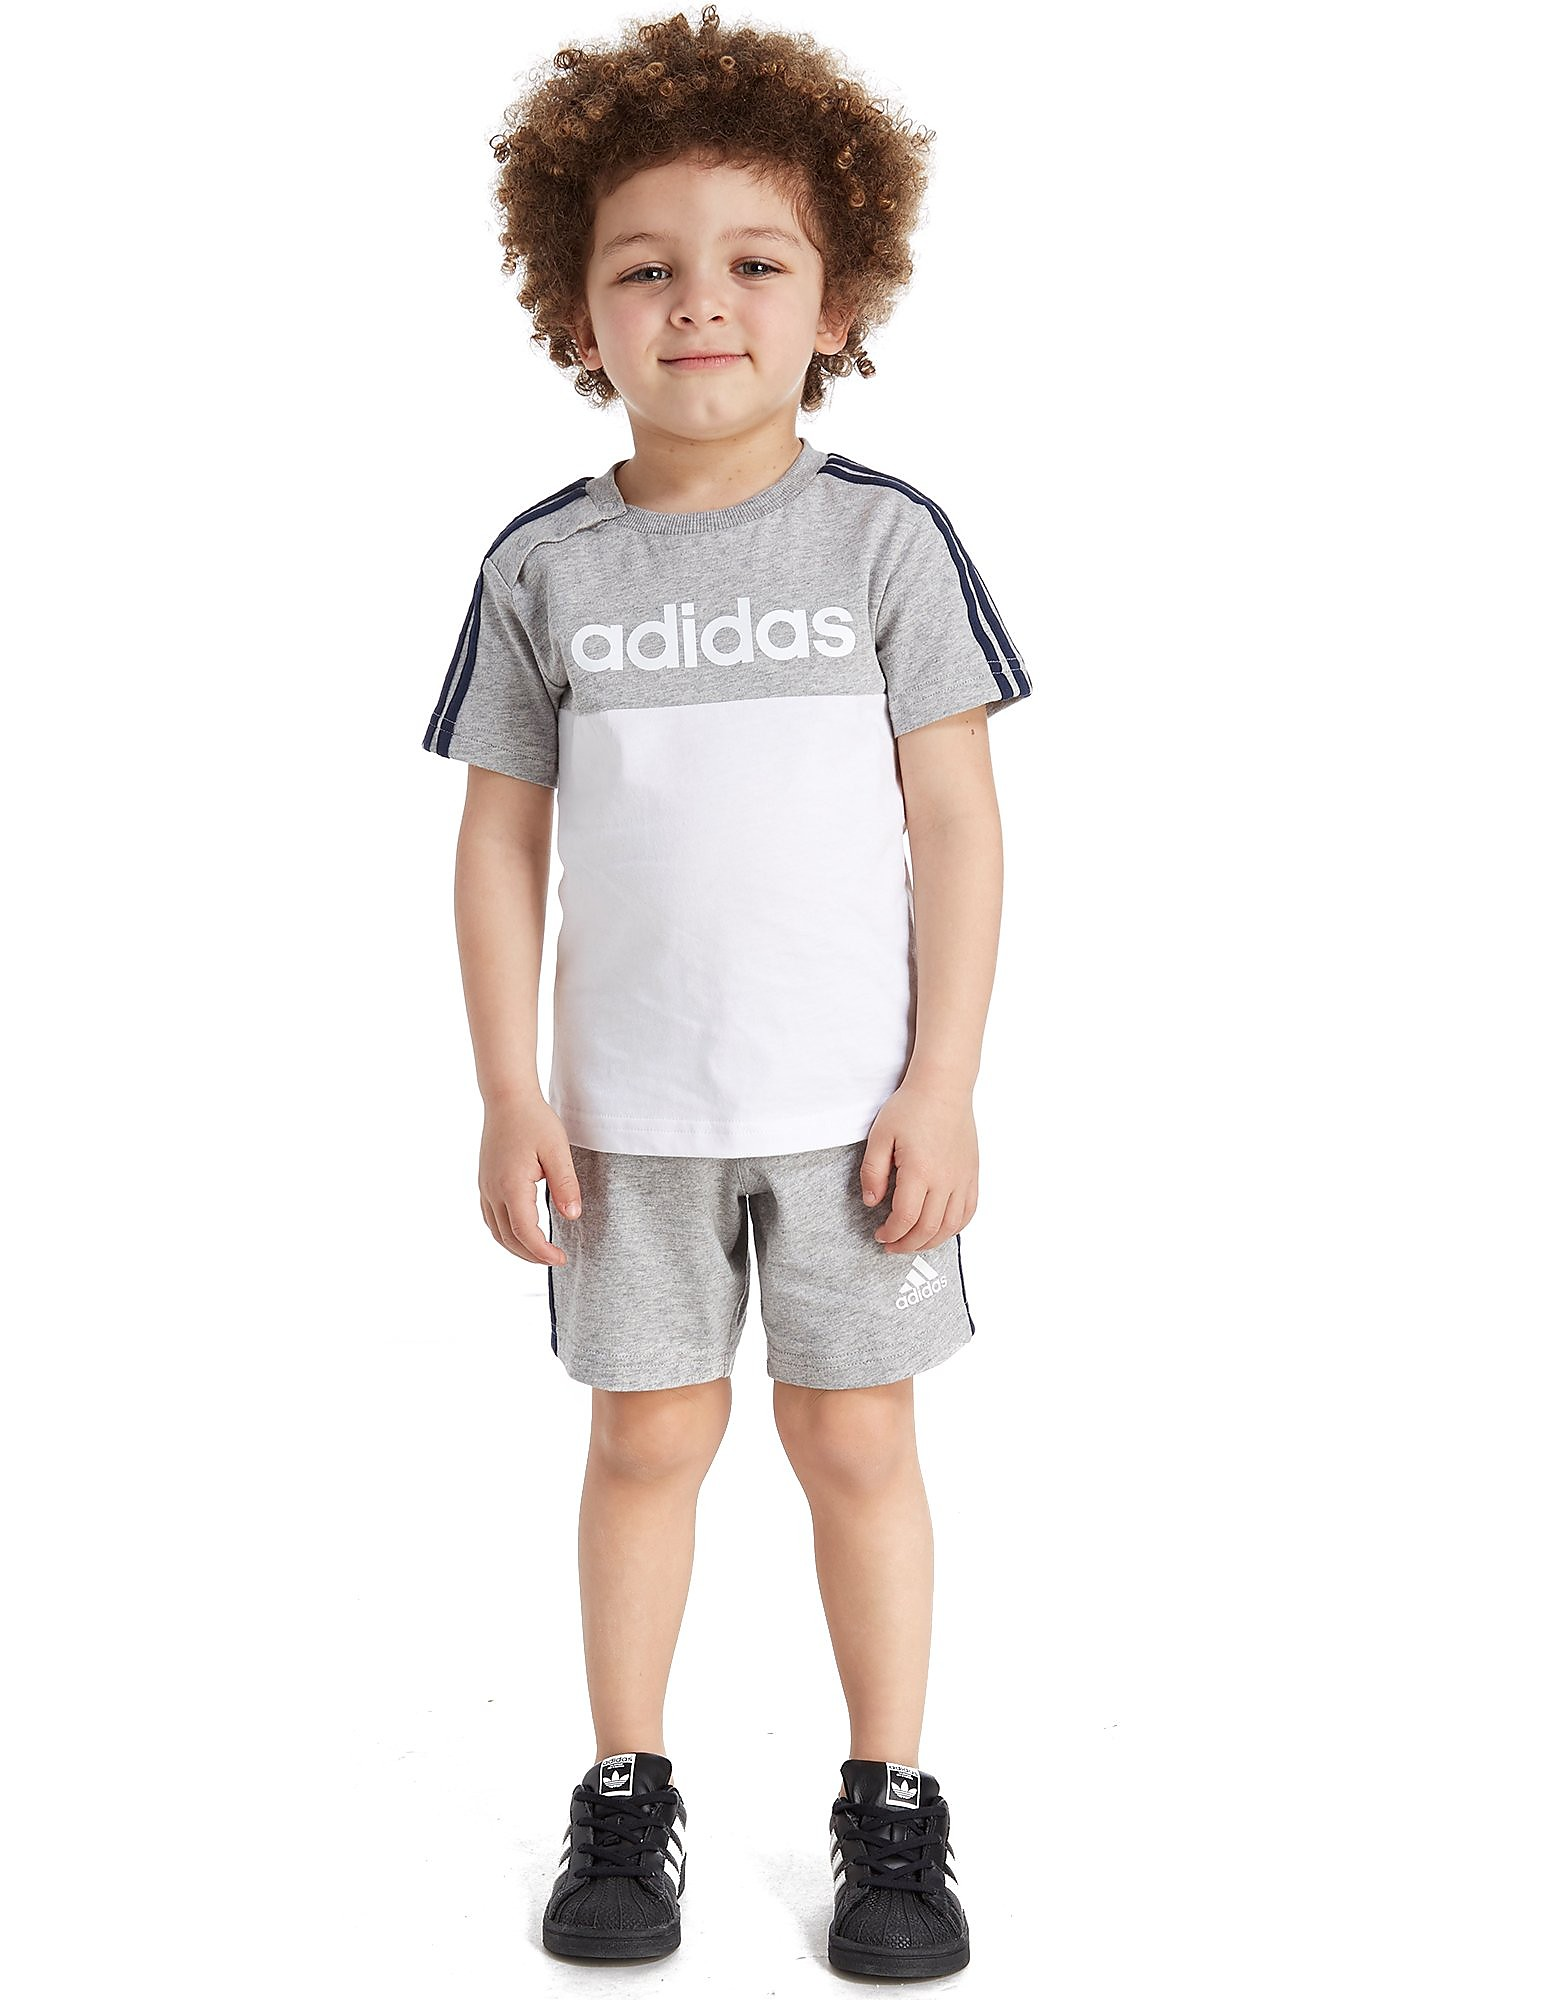 adidas Linear T-Shirt/Short Set Infant